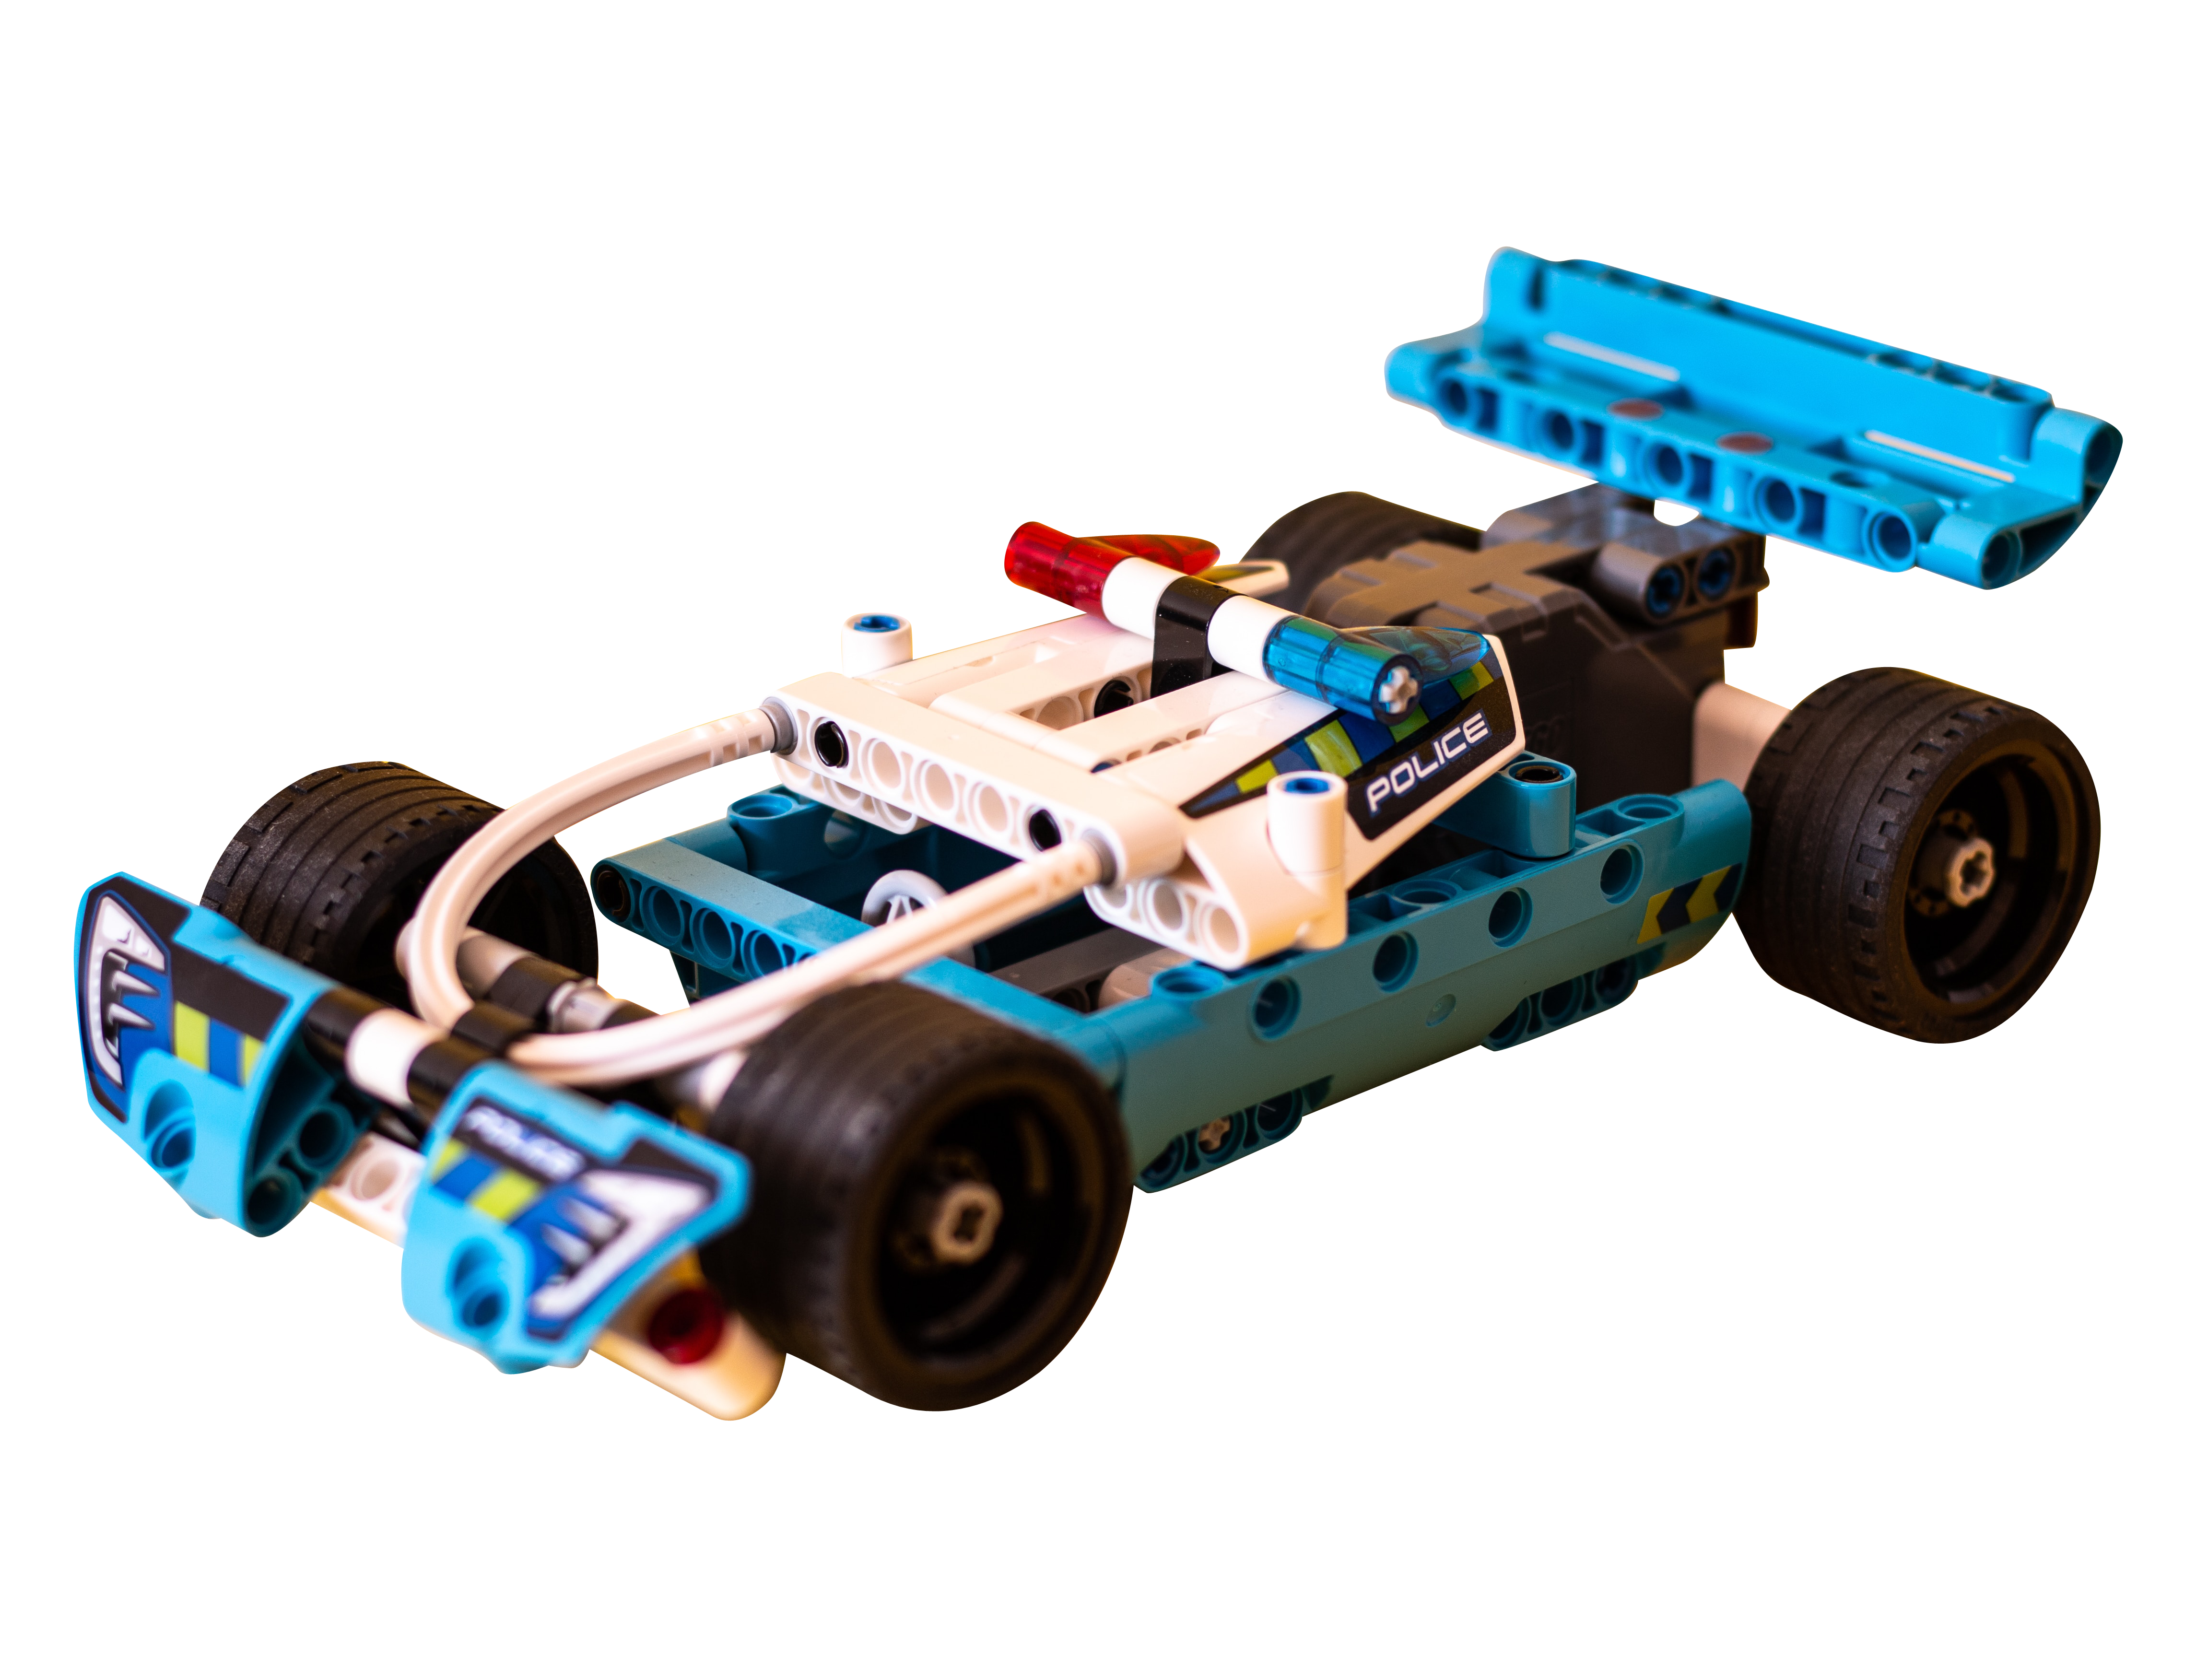 White and Blue Race Car Toy Transparent Background PNG